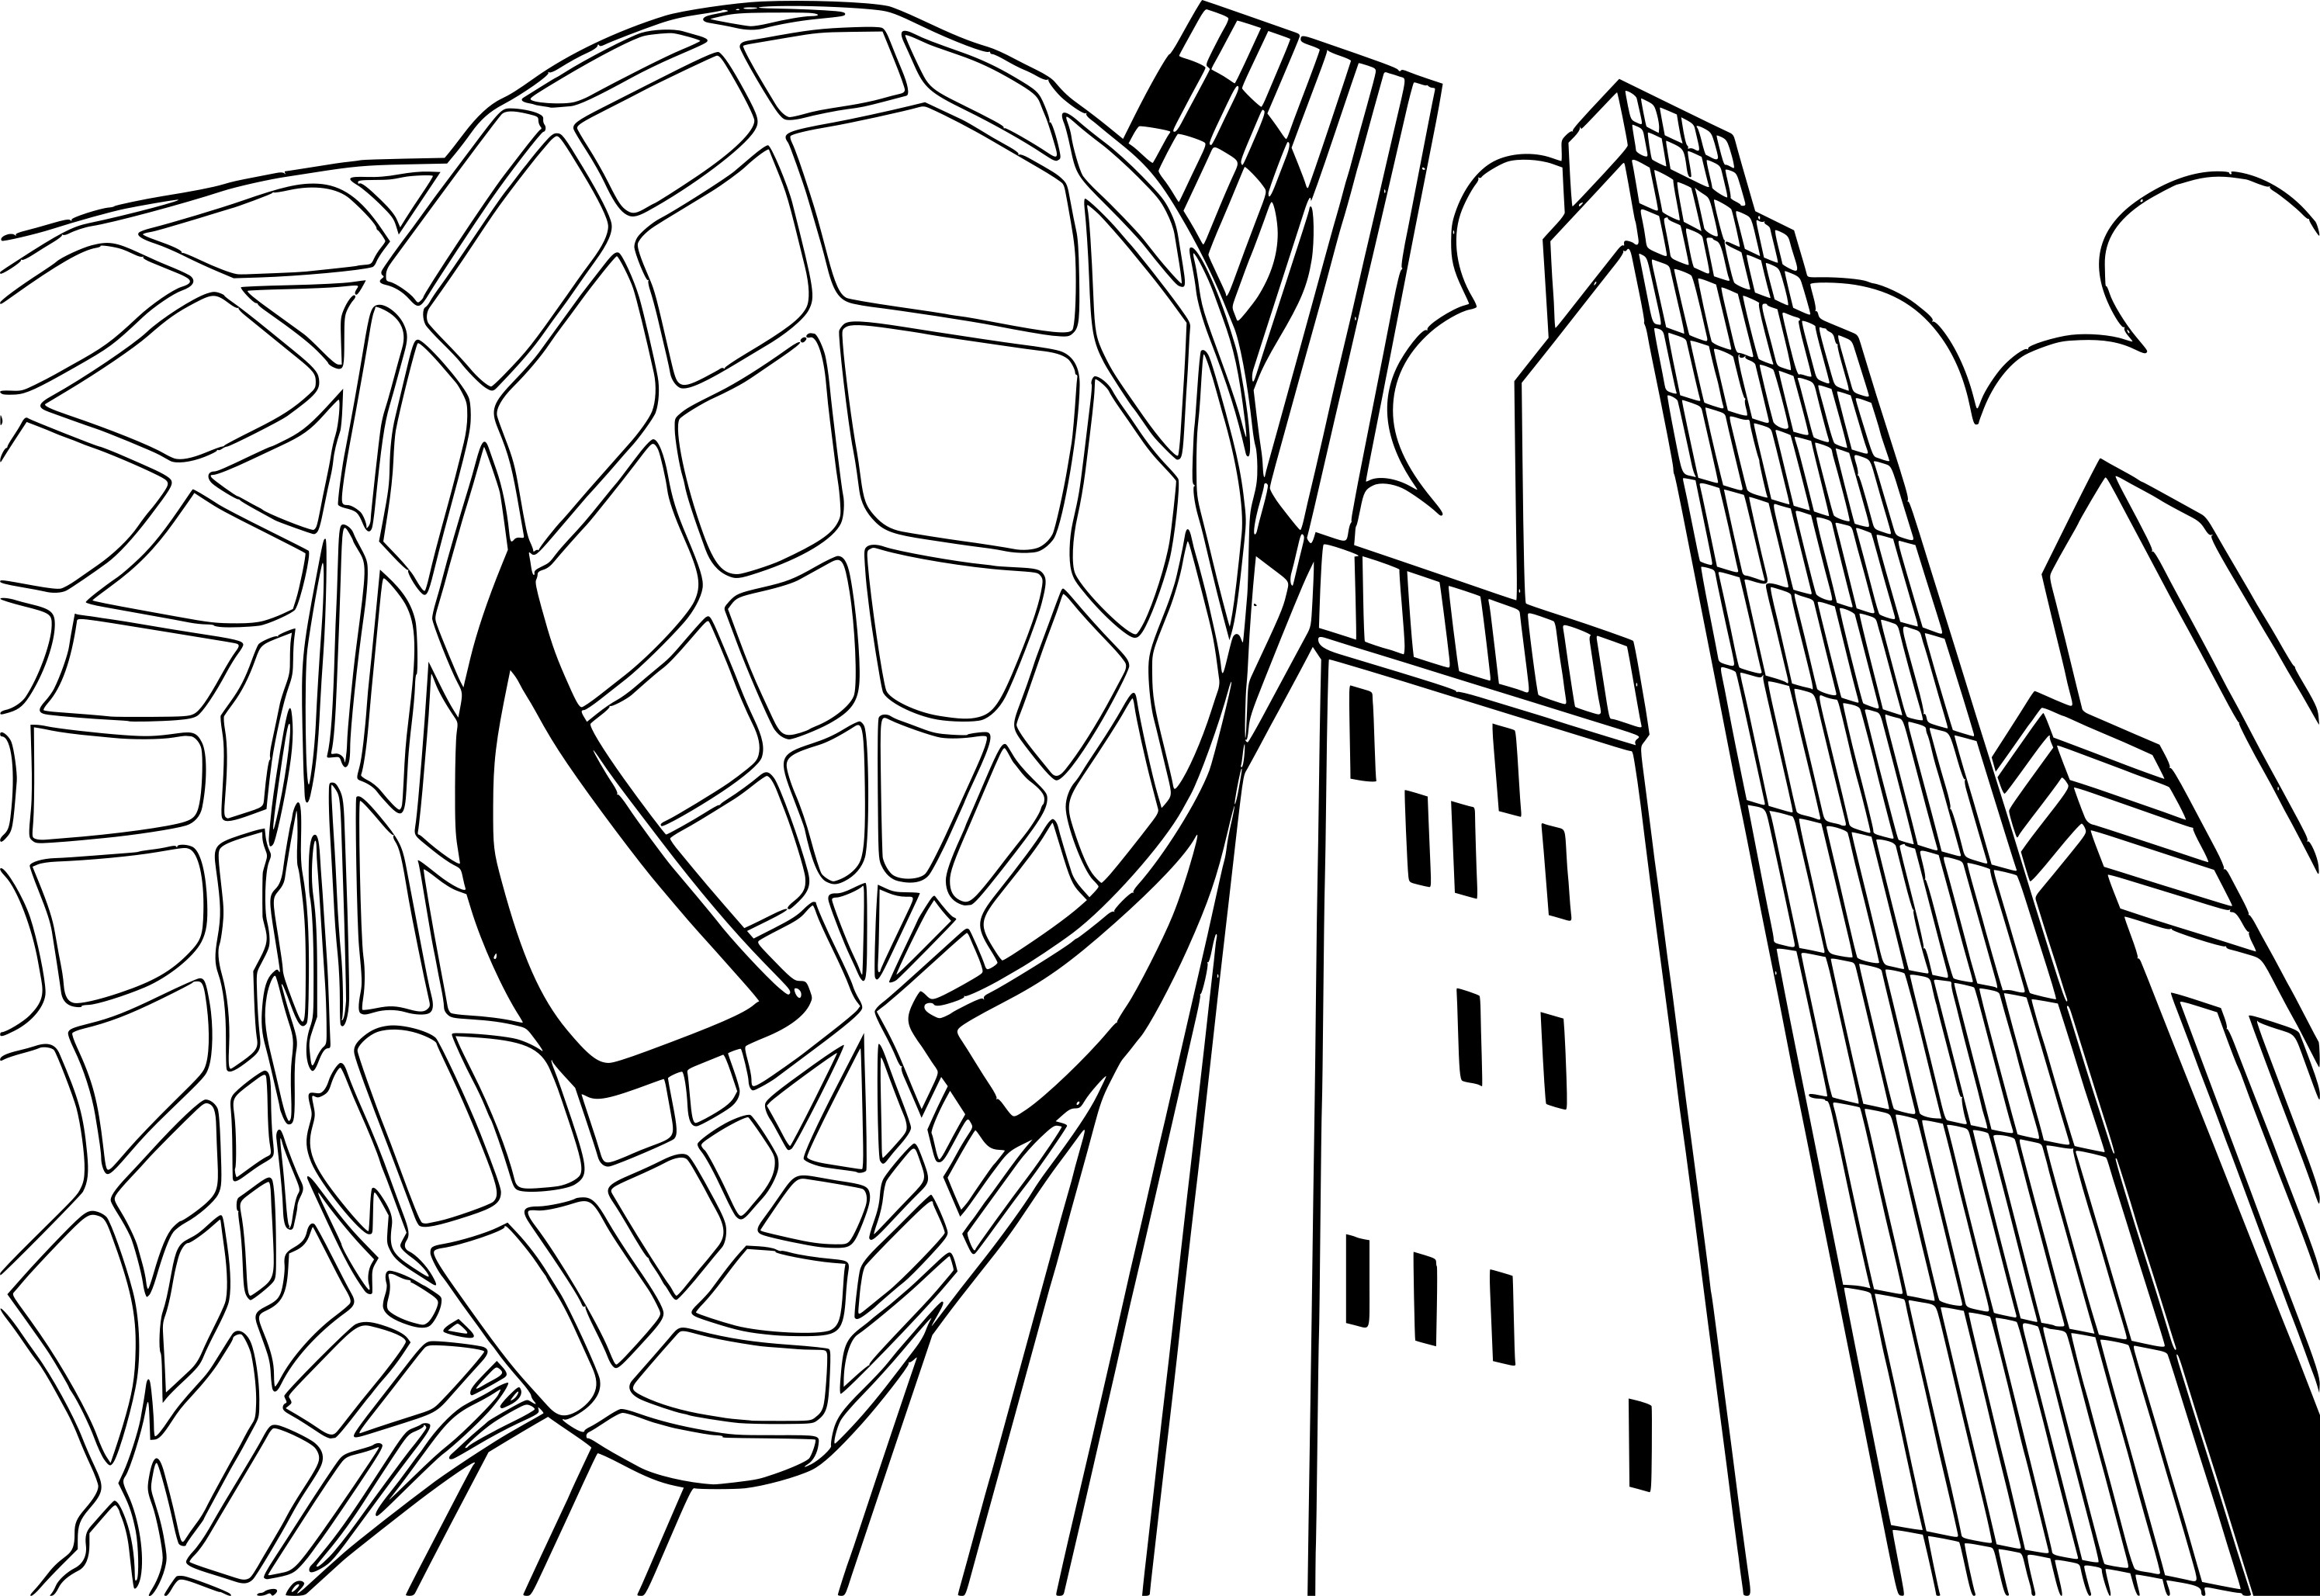 Coloriage spiderman 4 imprimer - Coloriage spiderman imprimer ...